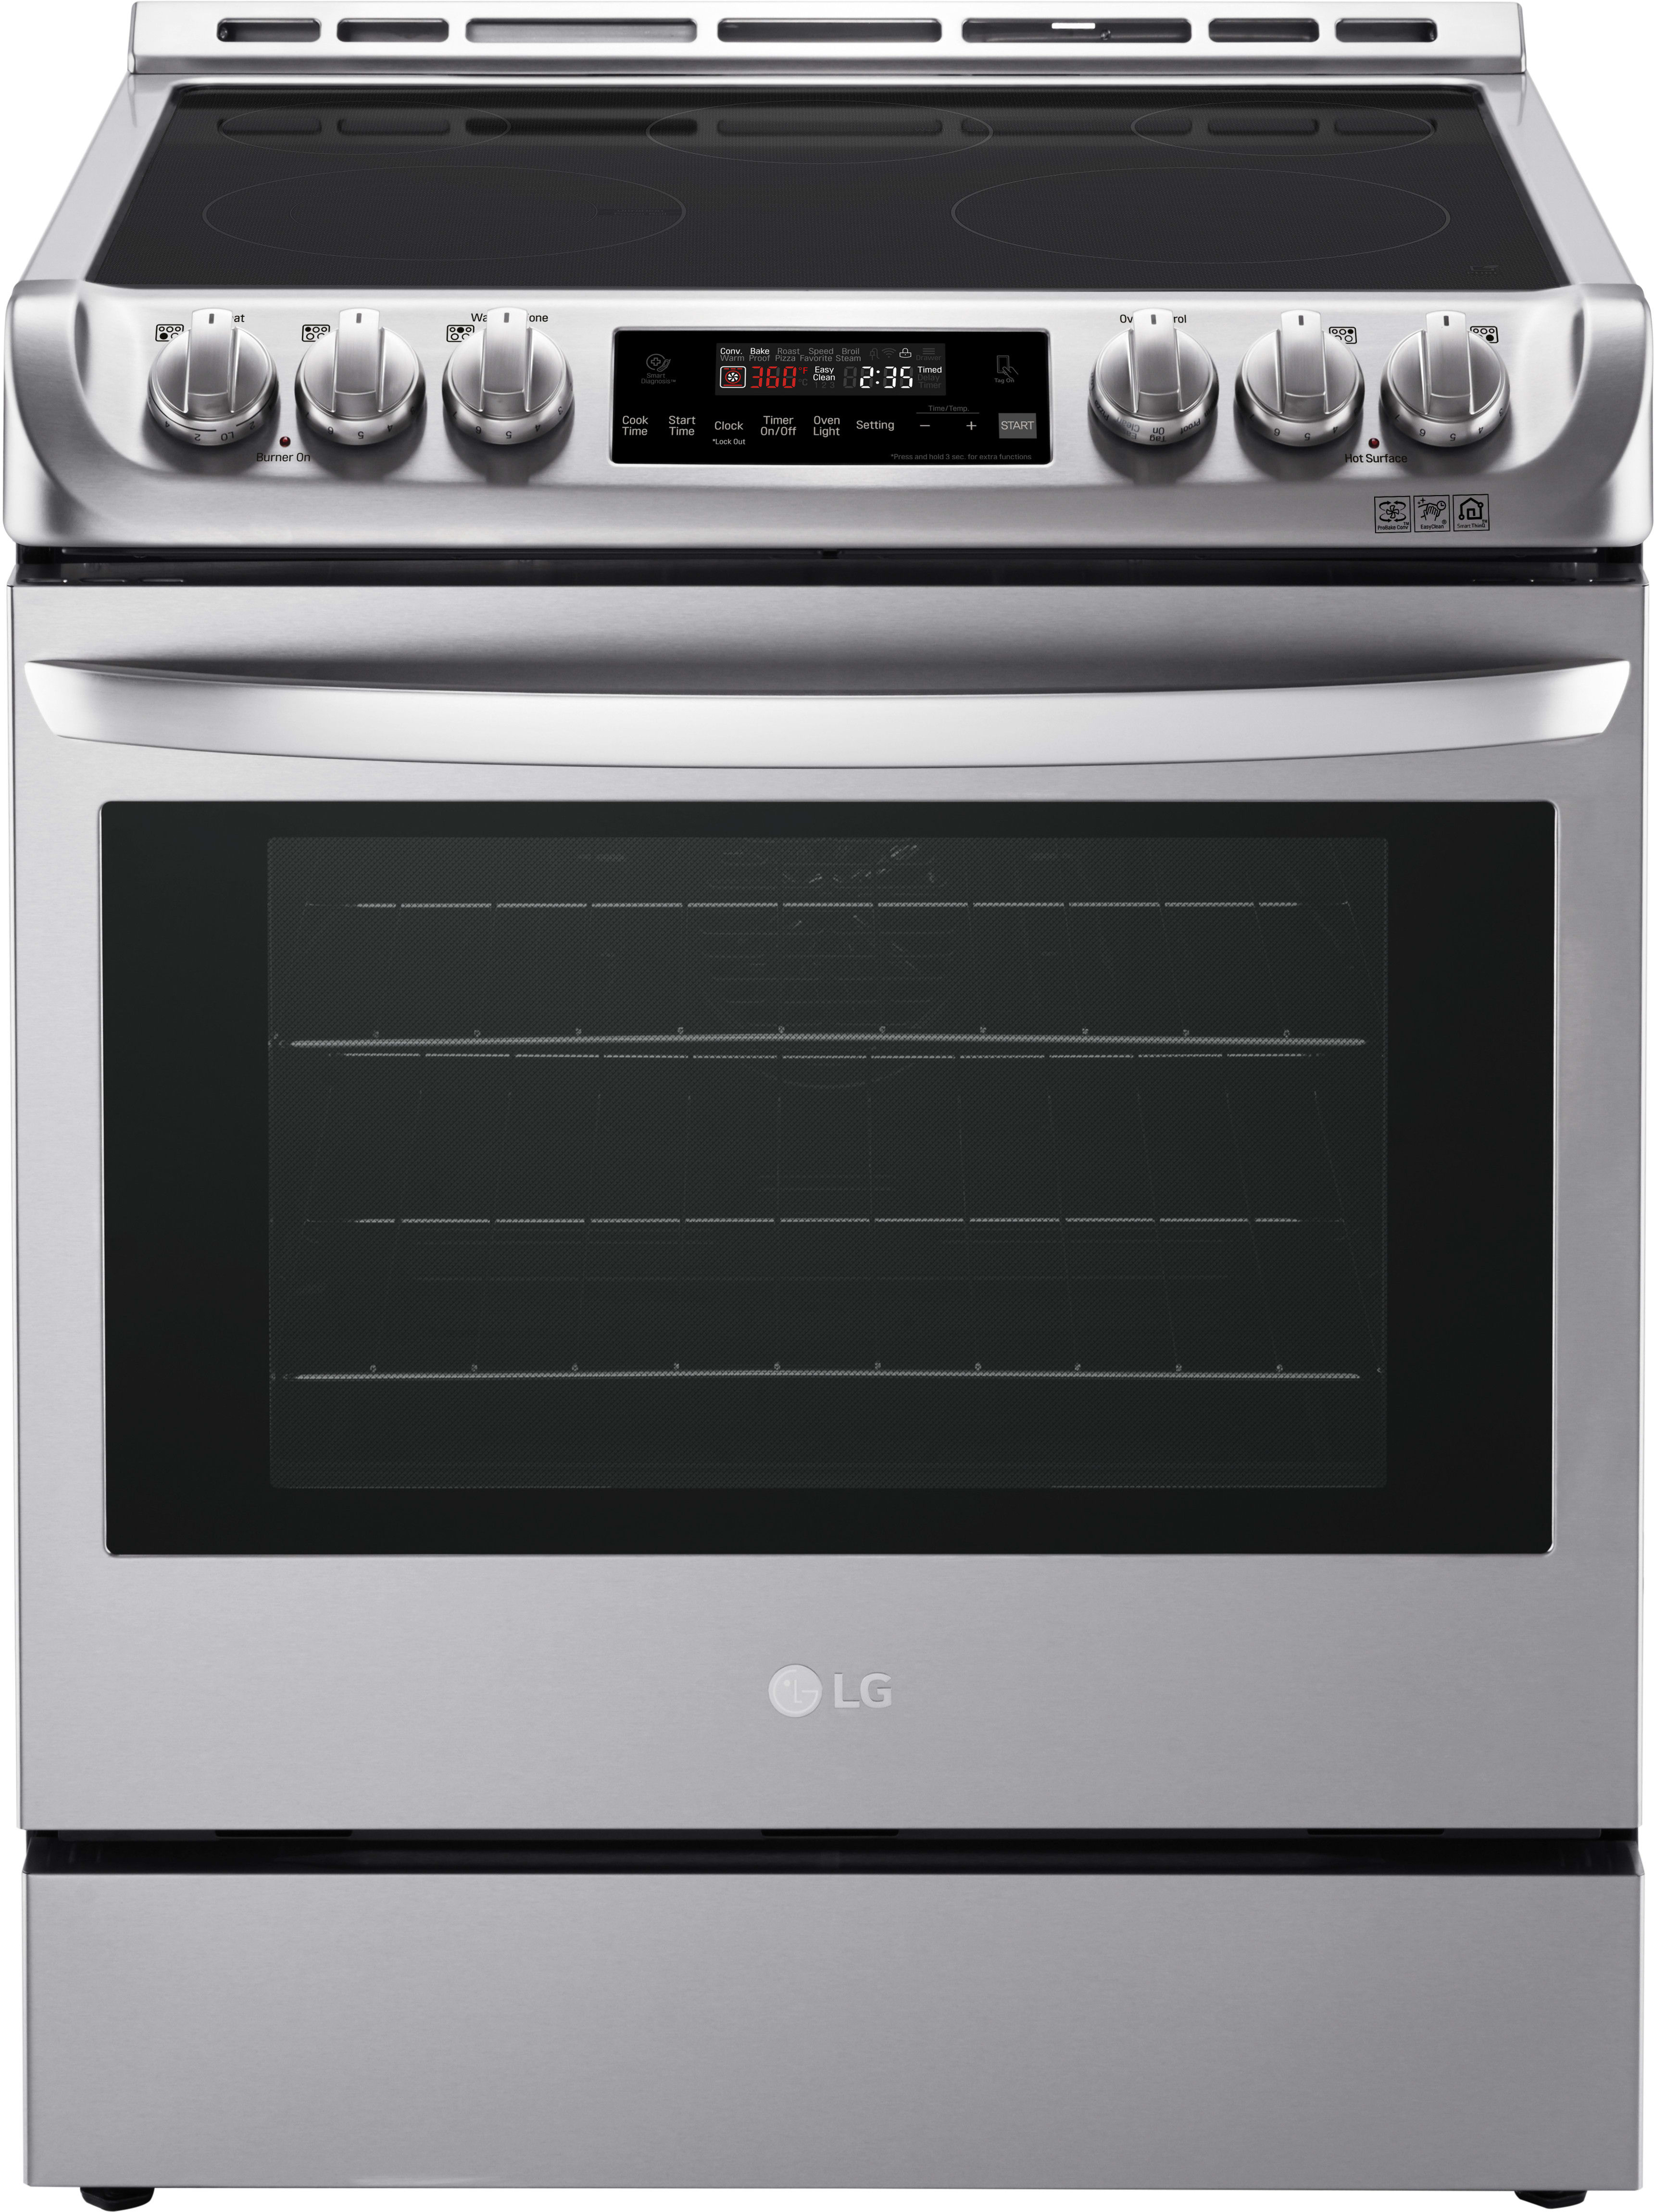 Lg Lse4611st 30 Inch Slide In Electric Range With Probake